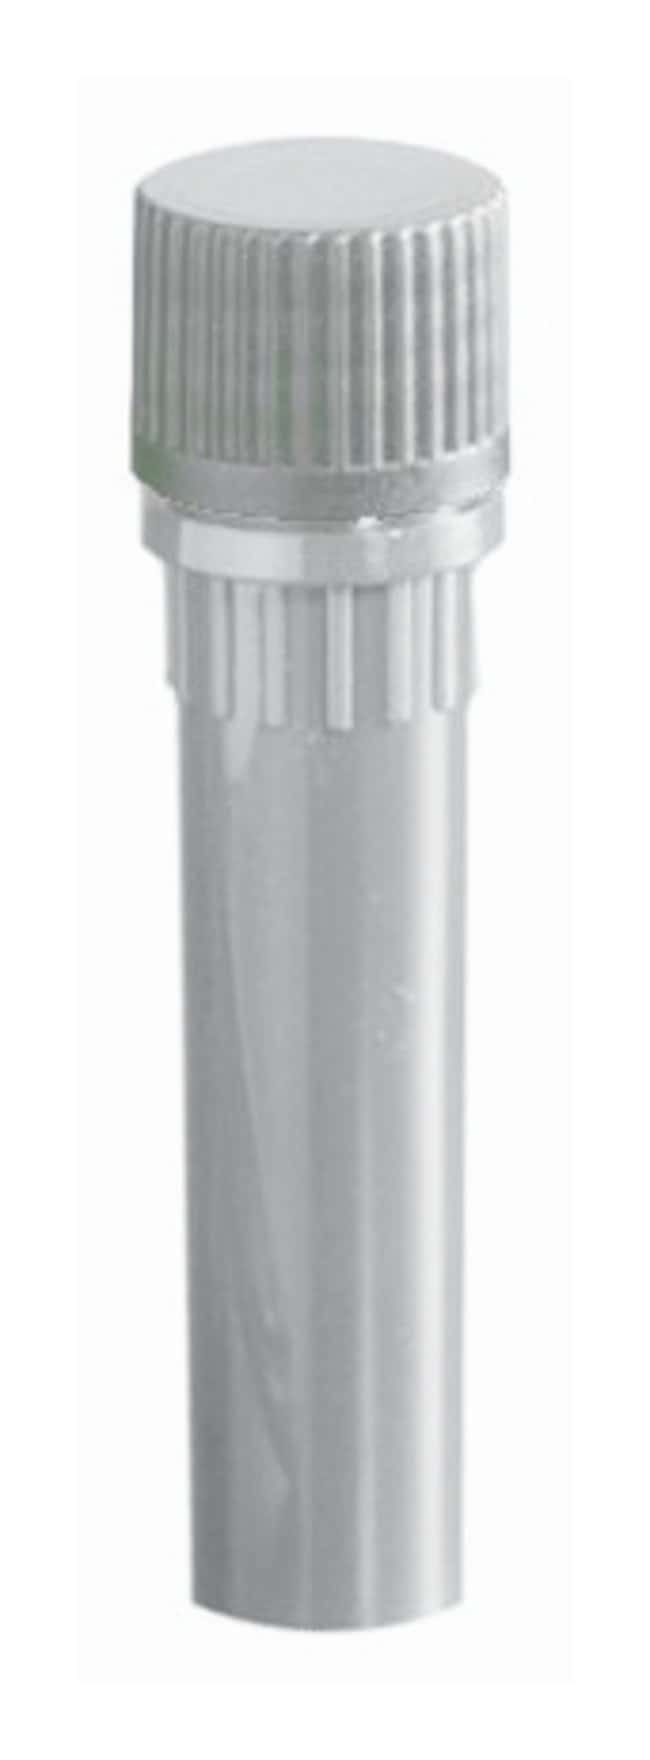 Axygen™ 2.0 mL Self-Standing Screw Cap Tubes